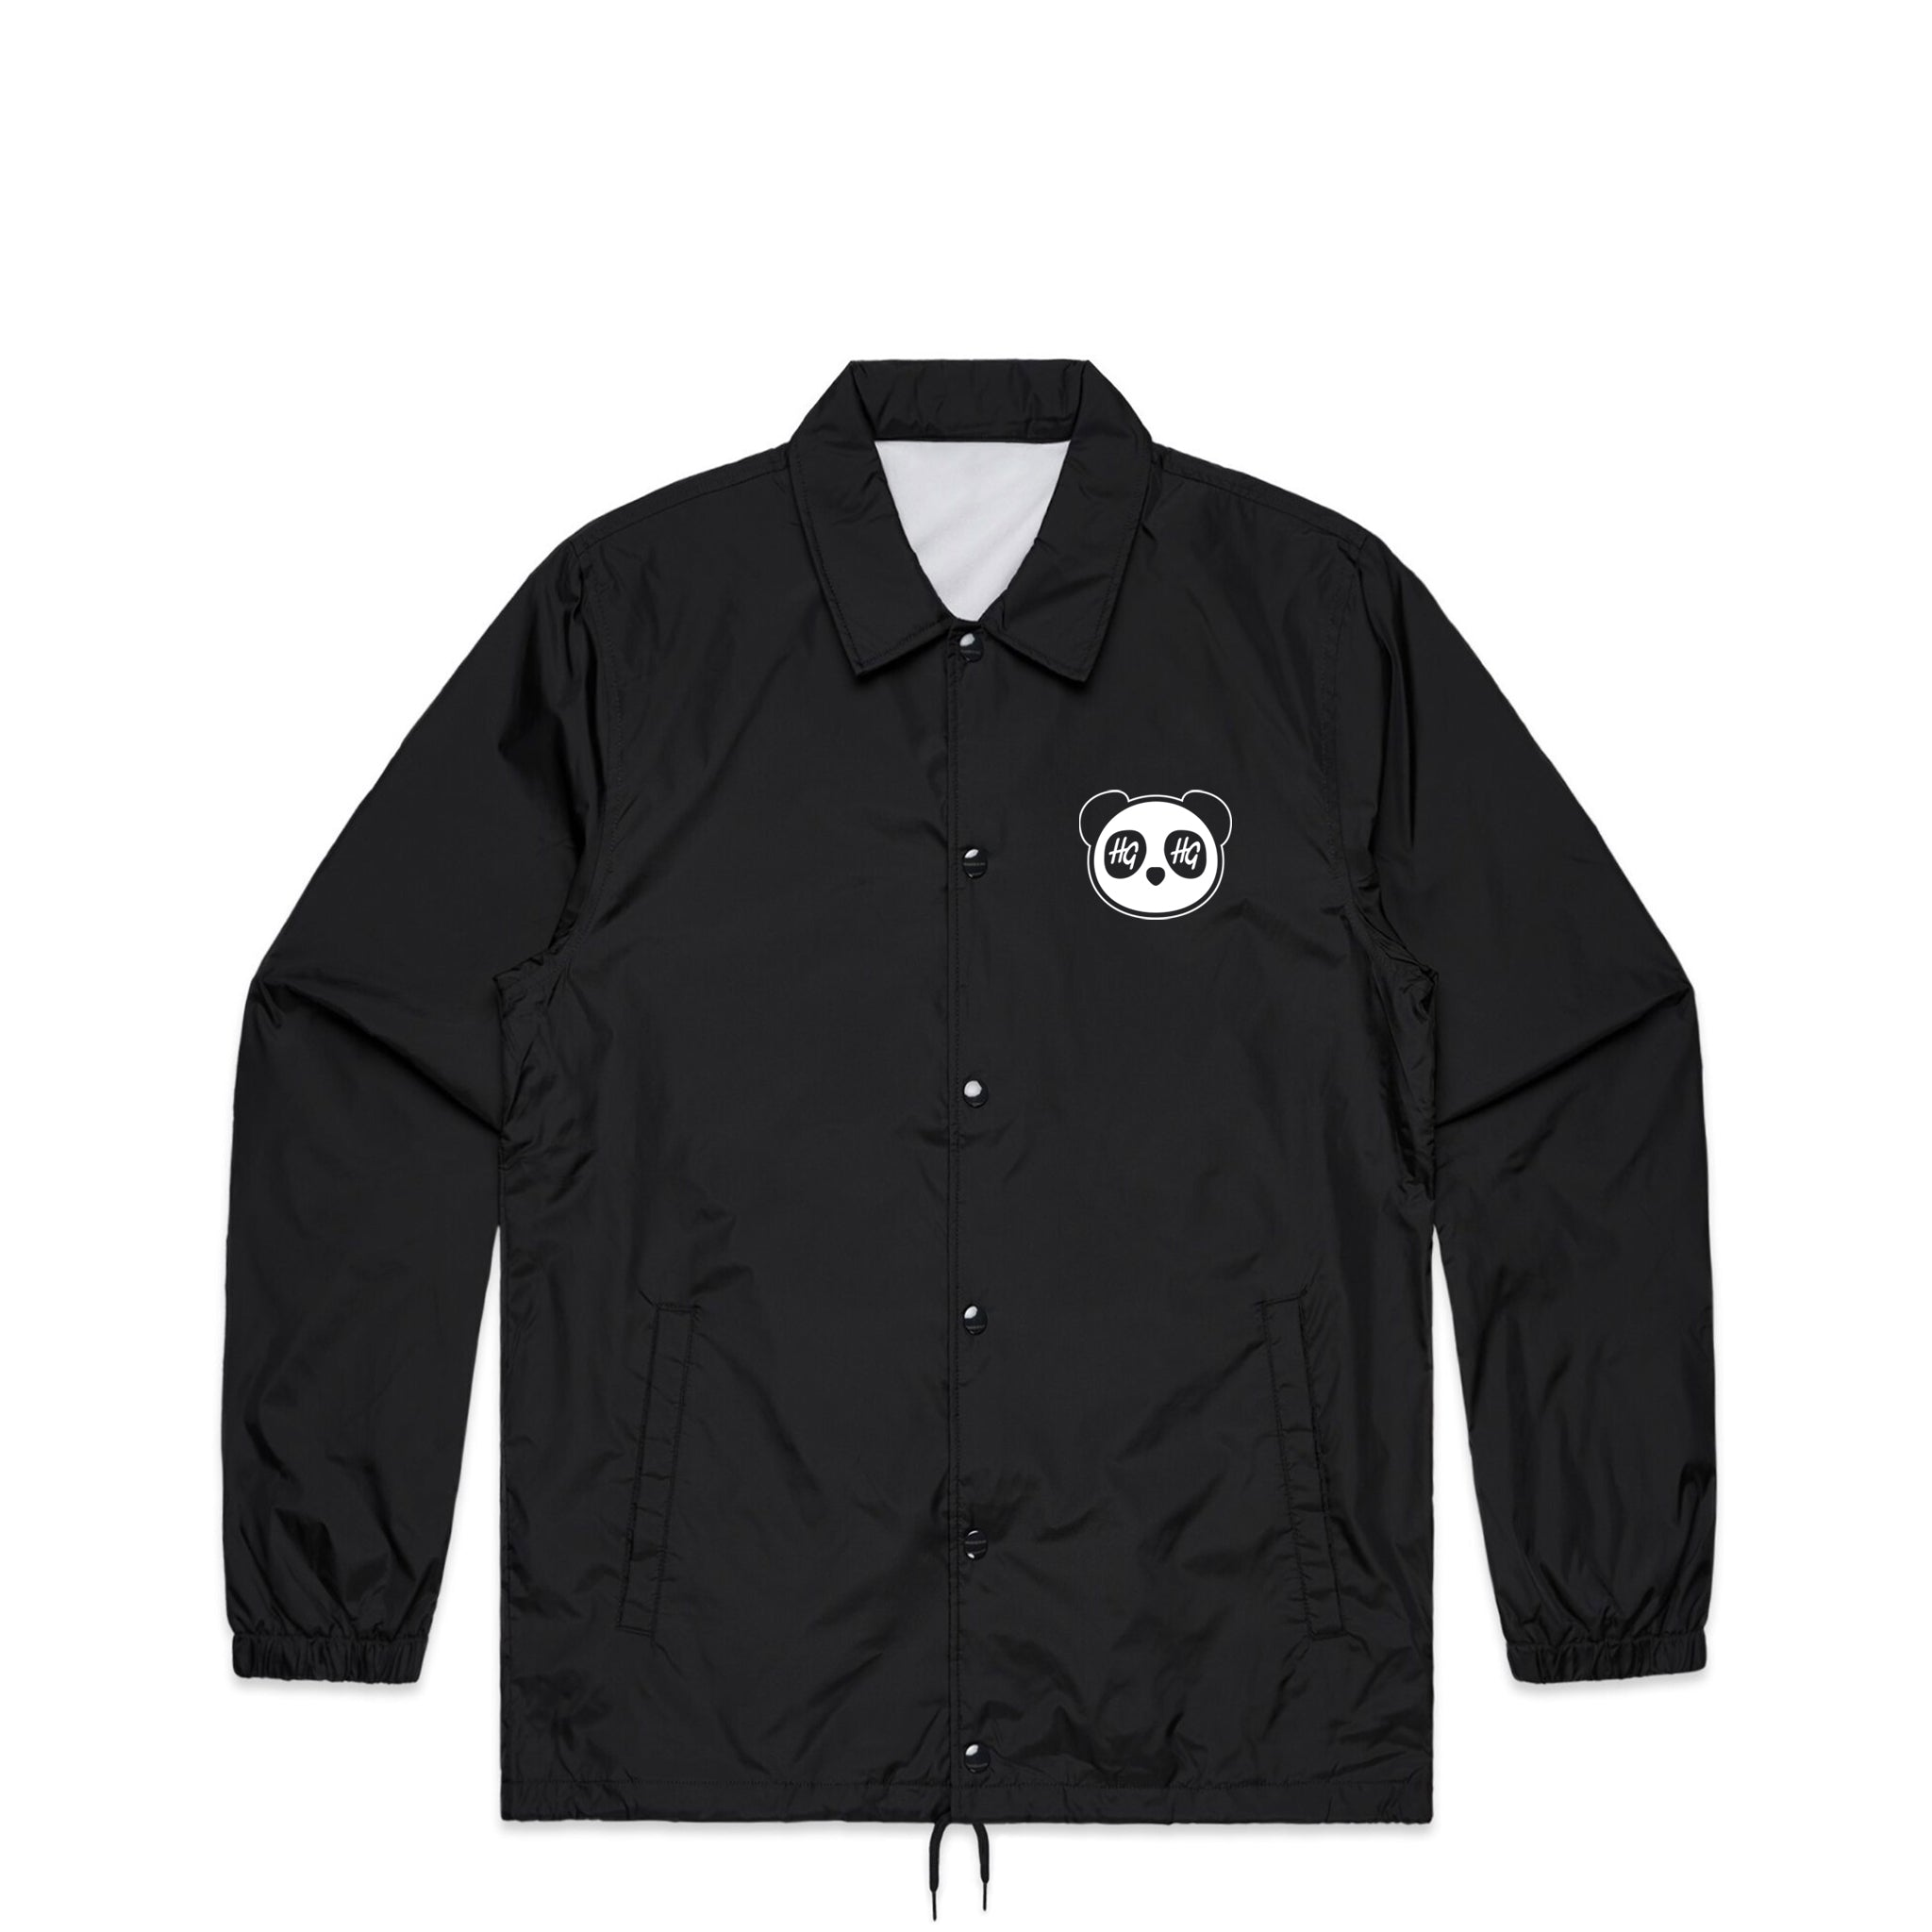 HG x DRARE Panda Black Coach Jacket | Hard Grind